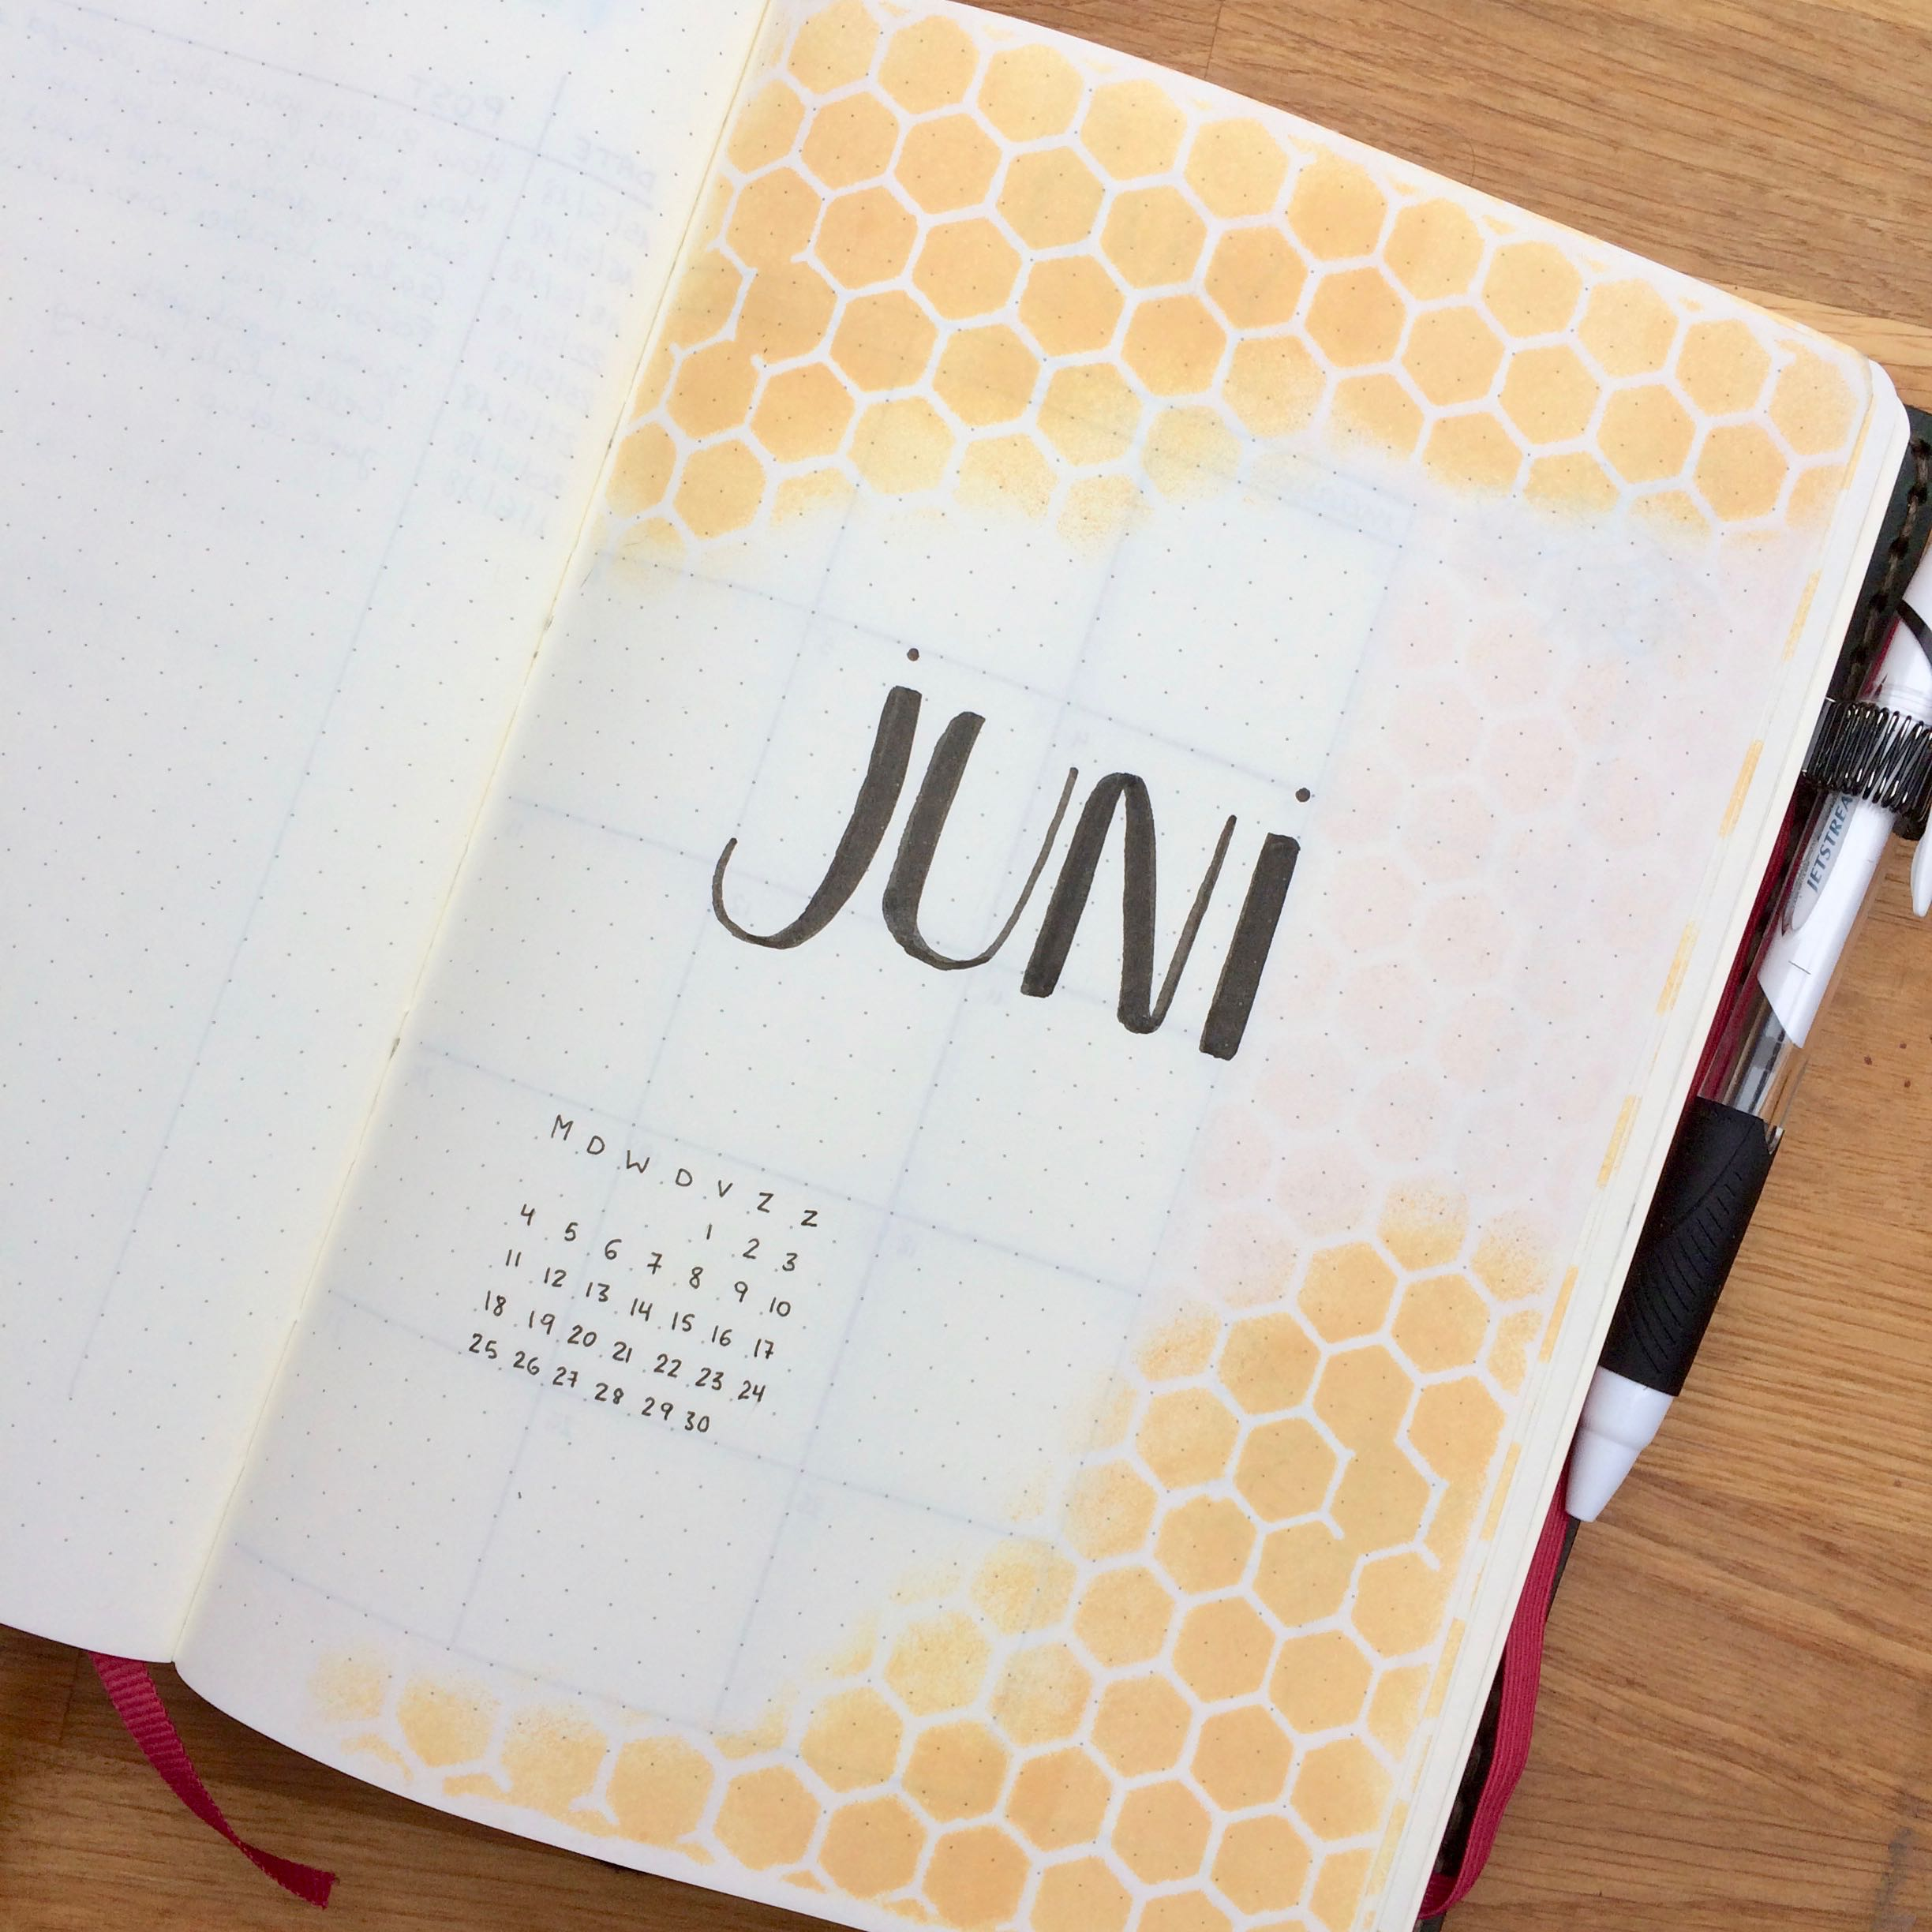 June Bullet Journal Setup